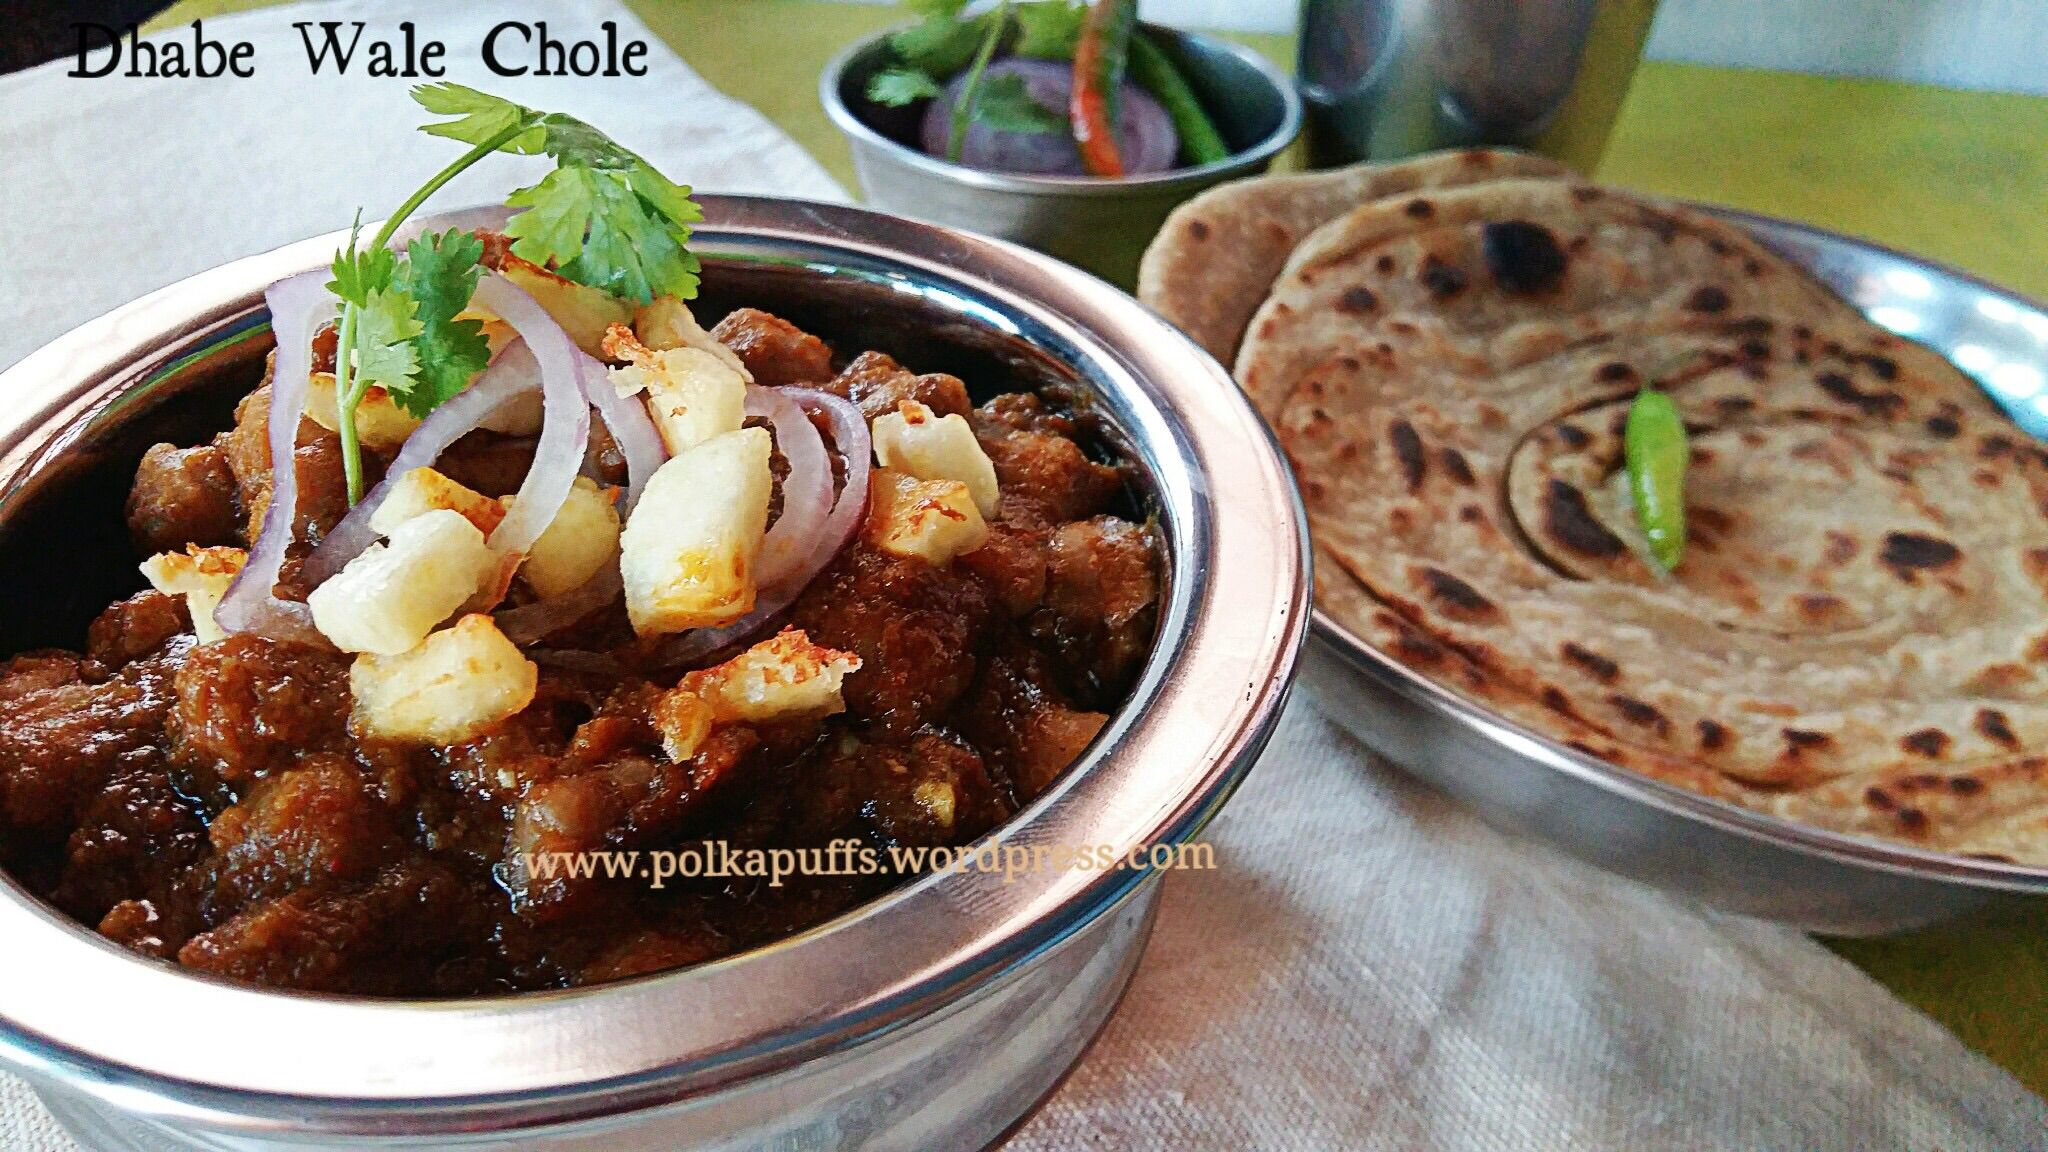 Dhabe wale chole chickpeas in a spicy indian curry chana masala dhabe wale chole chickpeas in a spicy indian curry chana masala recipe restaurant indian food recipes and masala recipe forumfinder Gallery